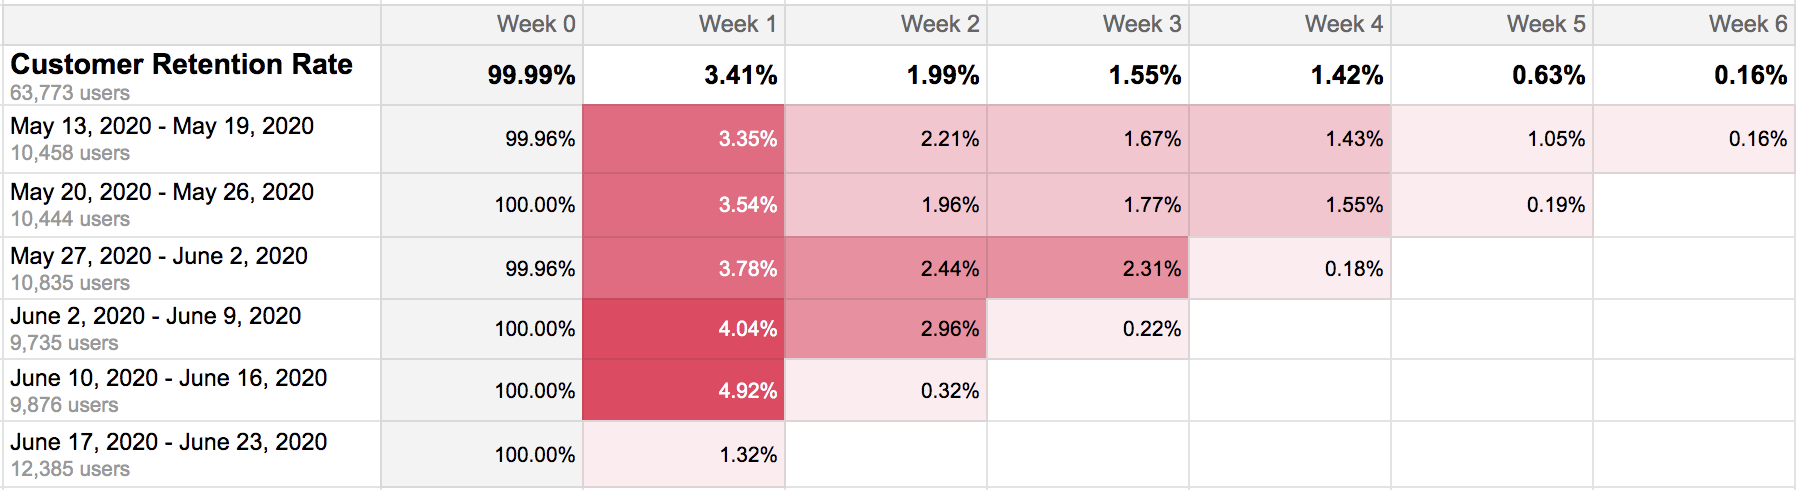 Customer retention cohort analysis Castodia Google Sheets